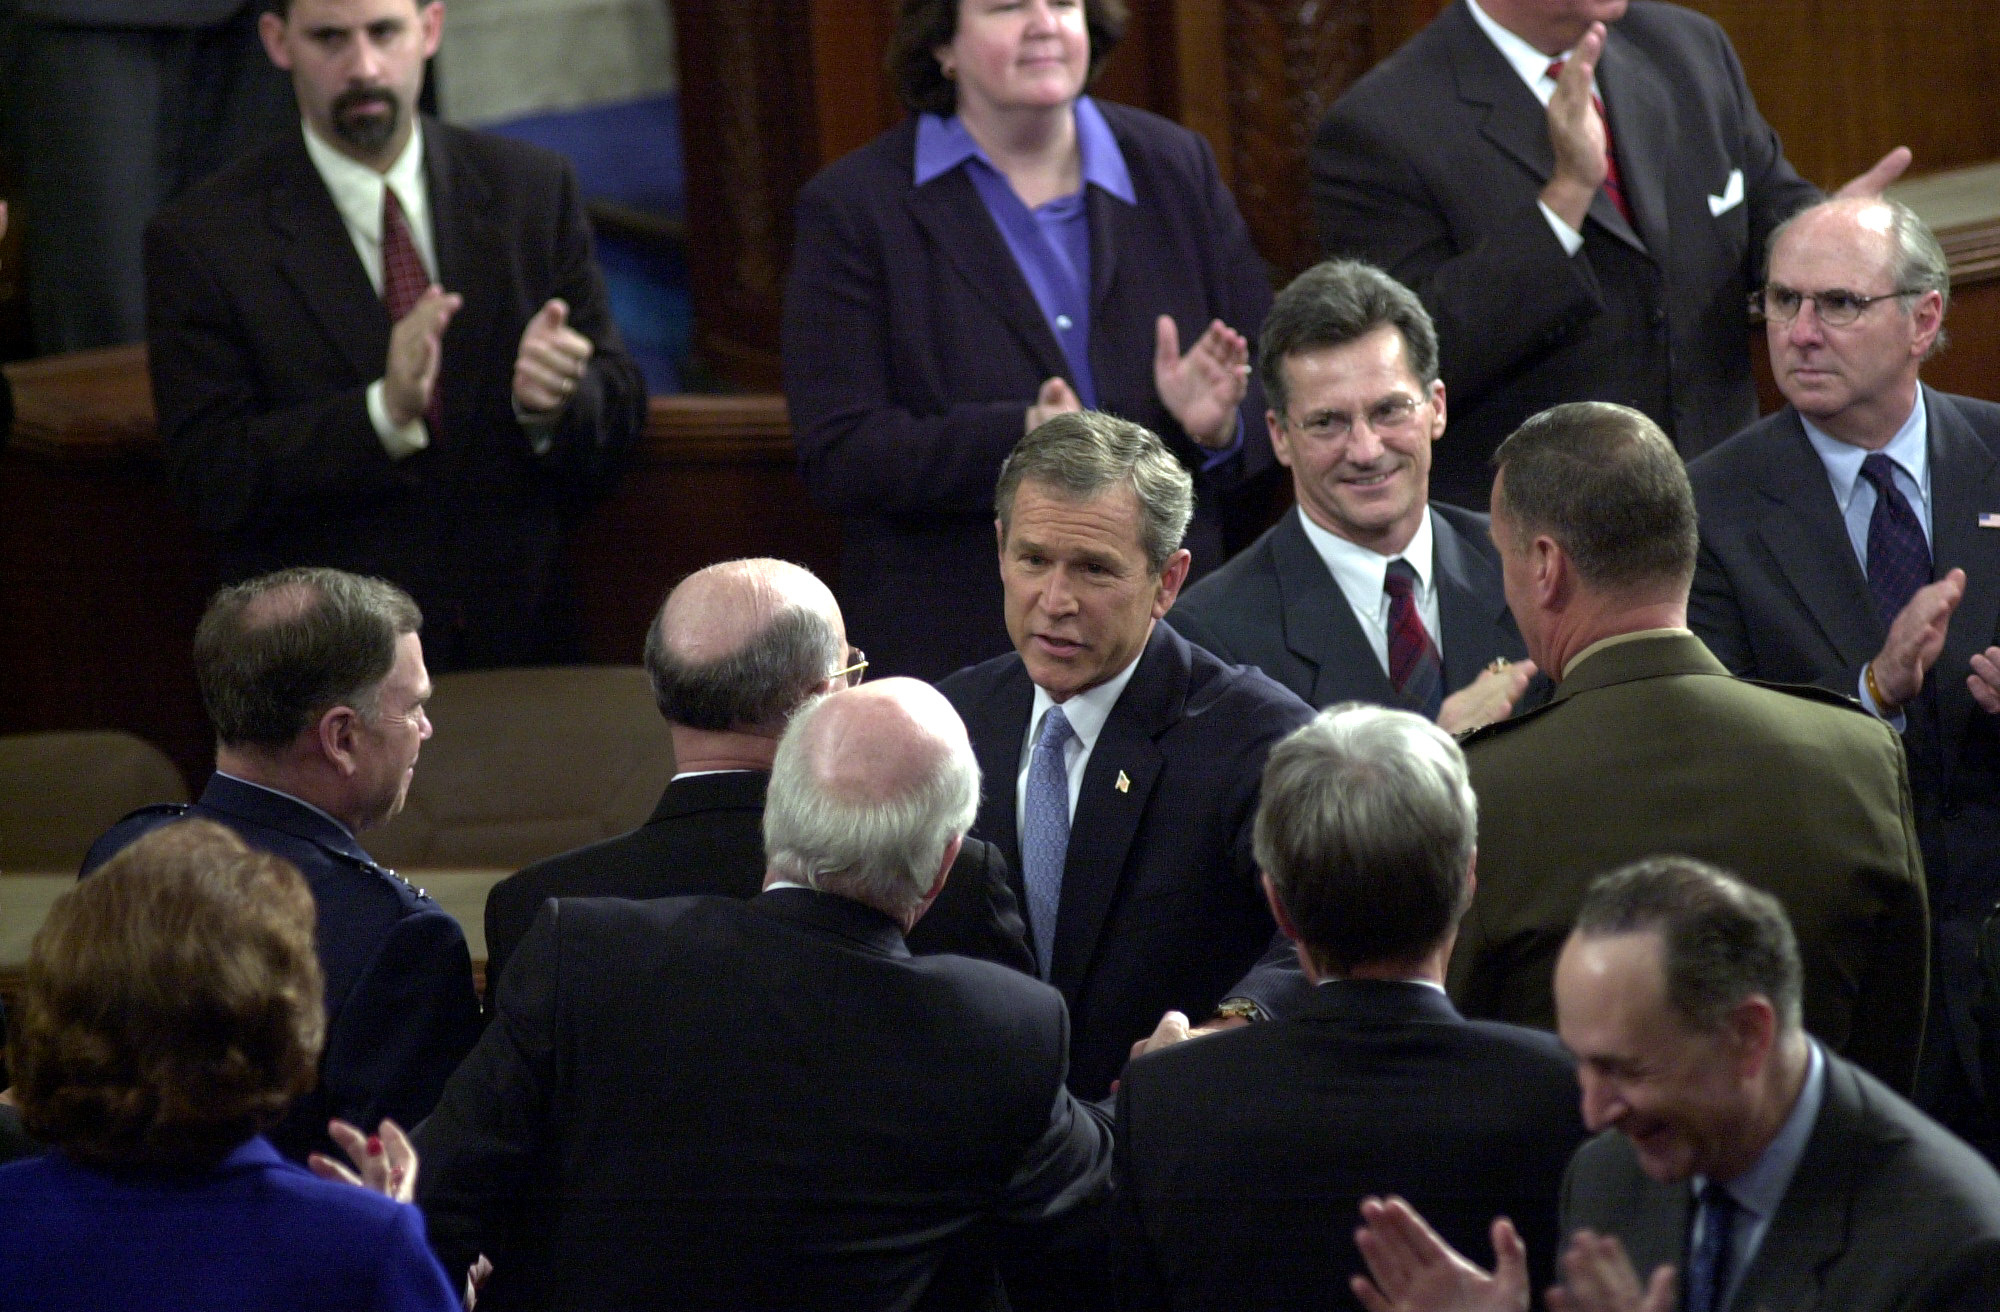 Union27/012902 -- President George W. Bush greets Patrick J. Leahy, D-Vt., before the State of the Union address.